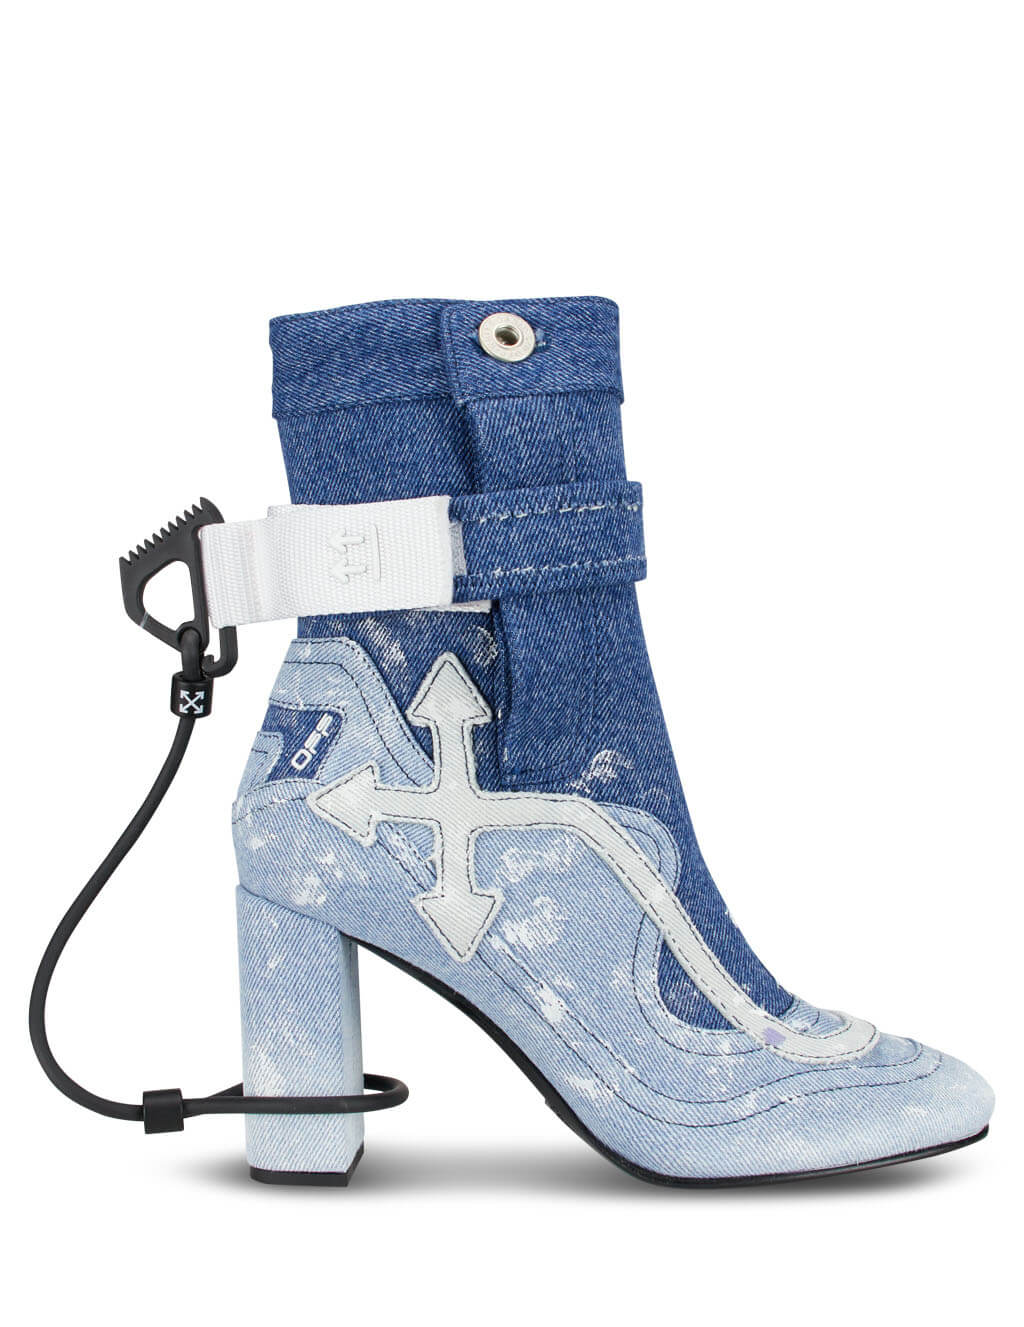 Off-White Women's Giulio Fashion Blue Denim Surf Boots OWIA197R207731107101